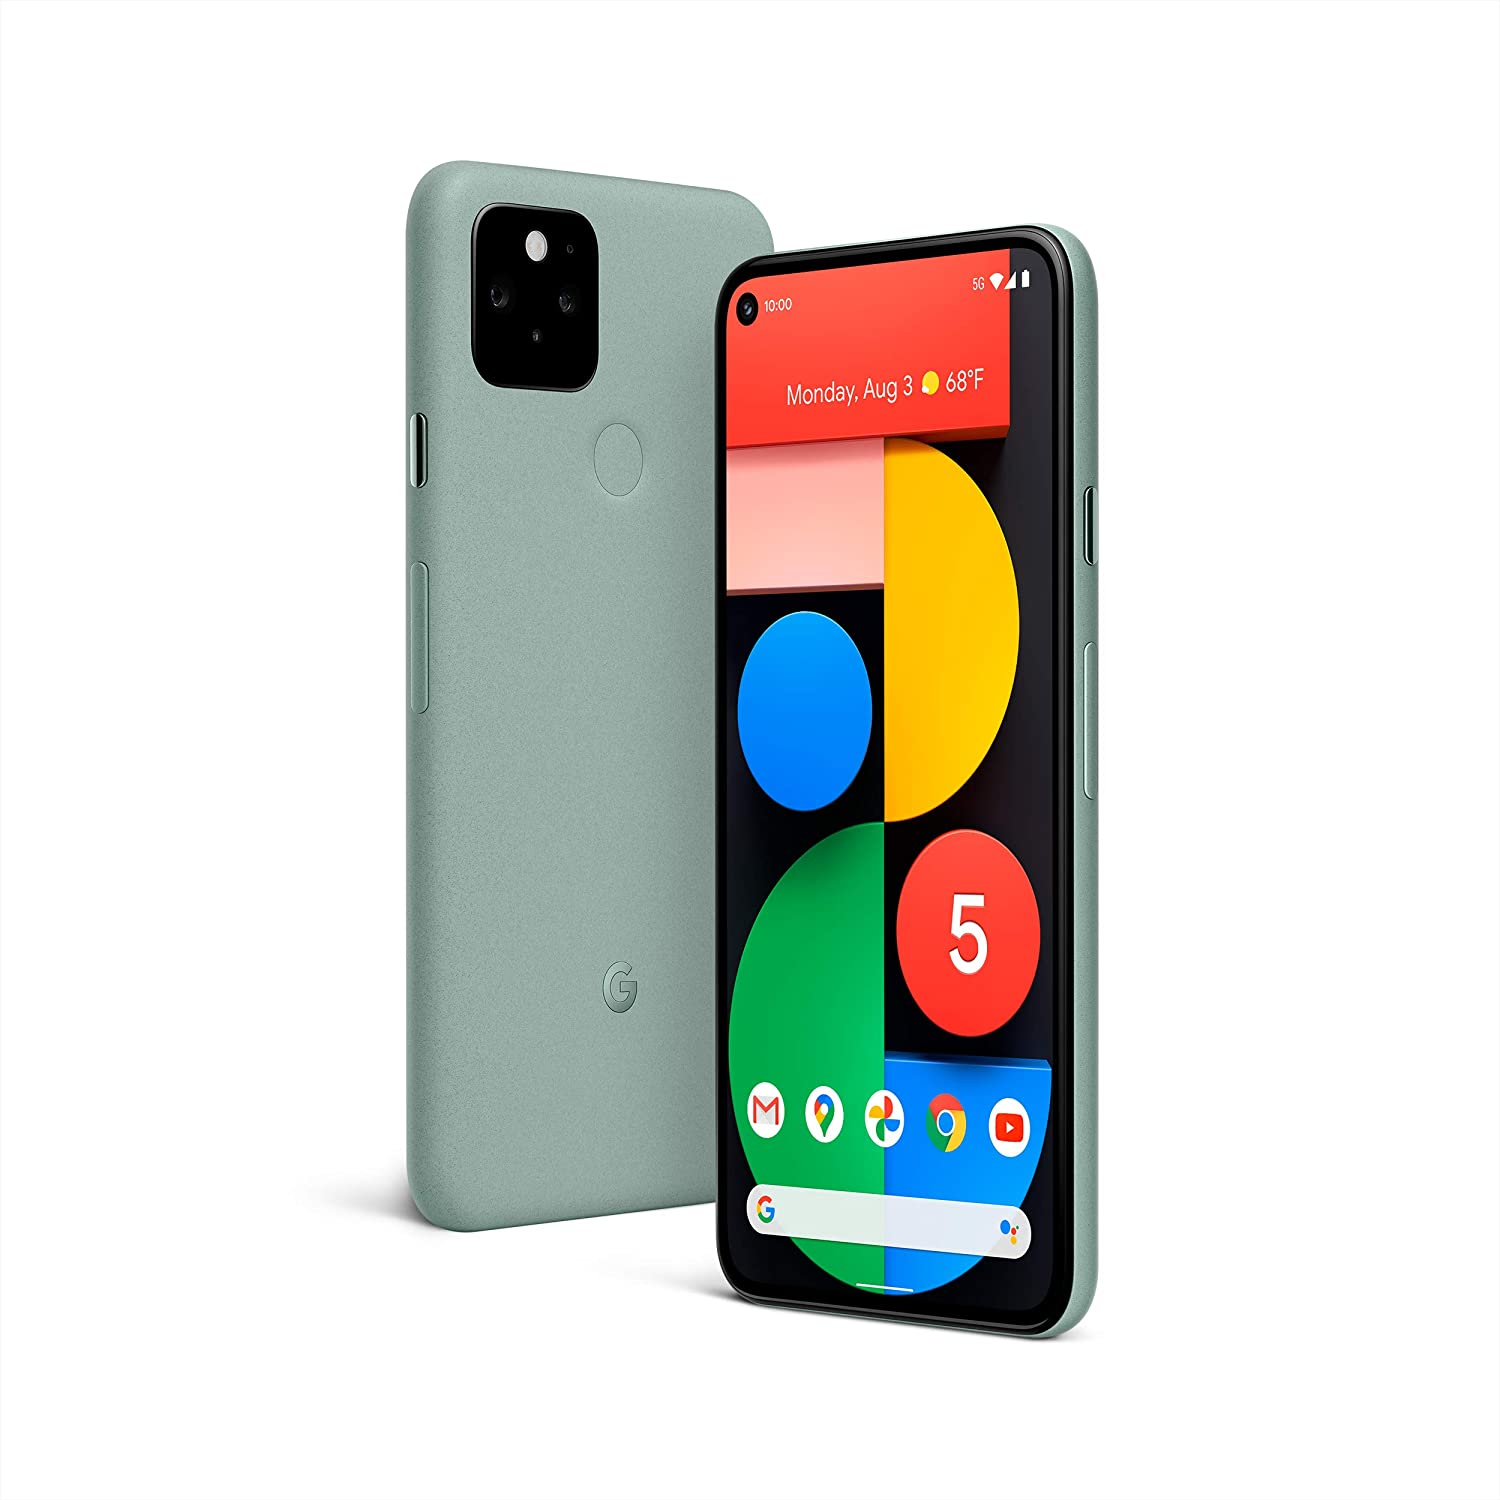 Amazon.com: Google Pixel 5 - 5G Android Phone - Water Resistant - Unlocked  Smartphone with Night Sight and Ultrawide Lens - Sorta Sage